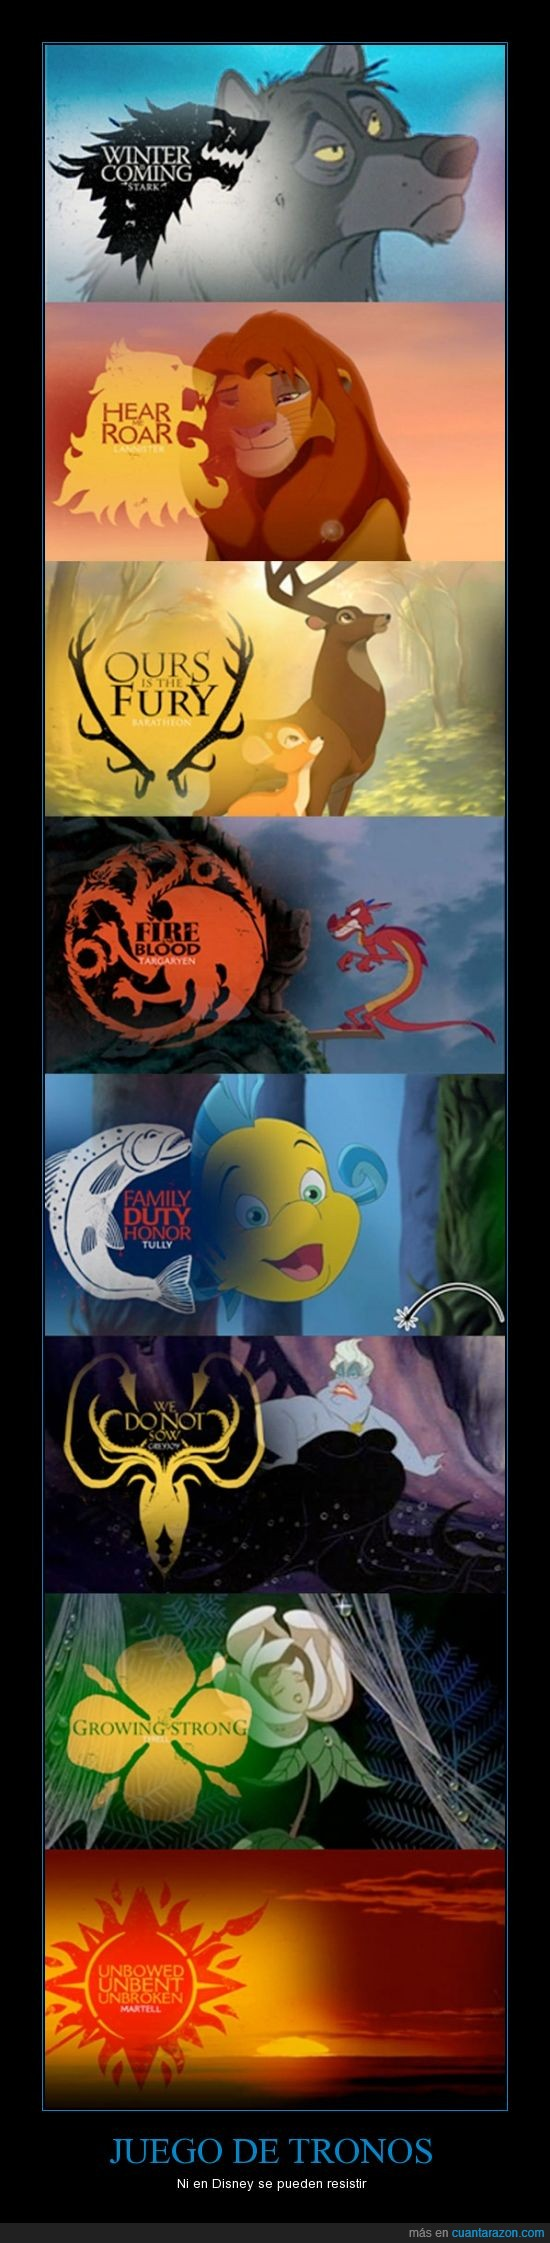 disney,juego,lannister,simba,sol,tronos,tyrell